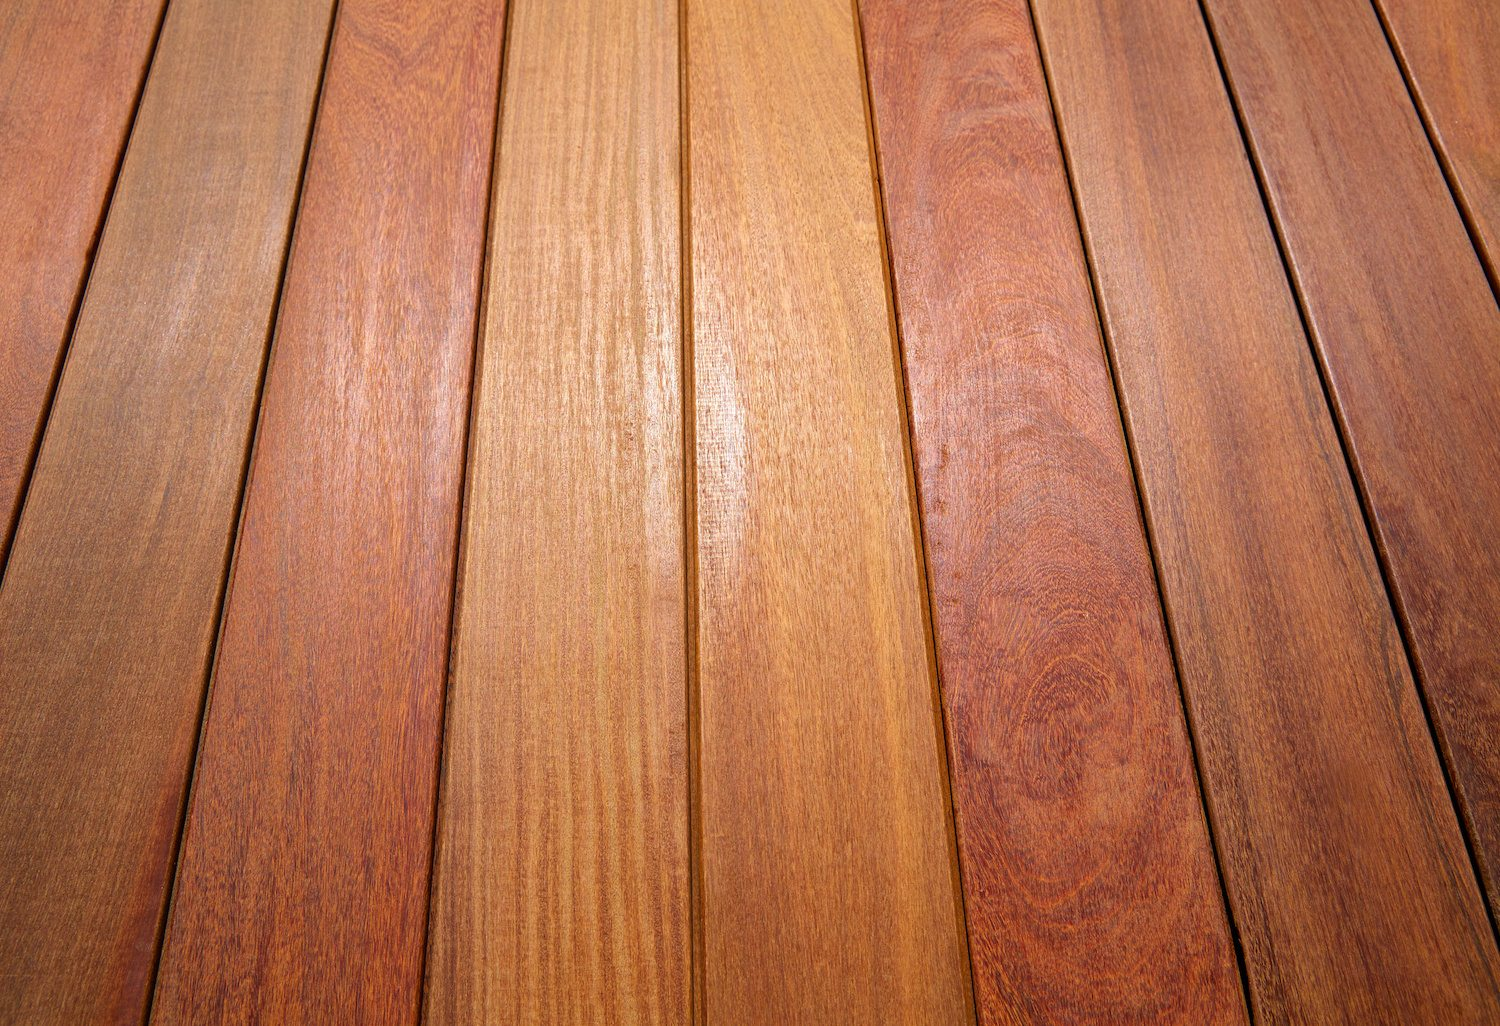 What is the Best Hardwood Decking?